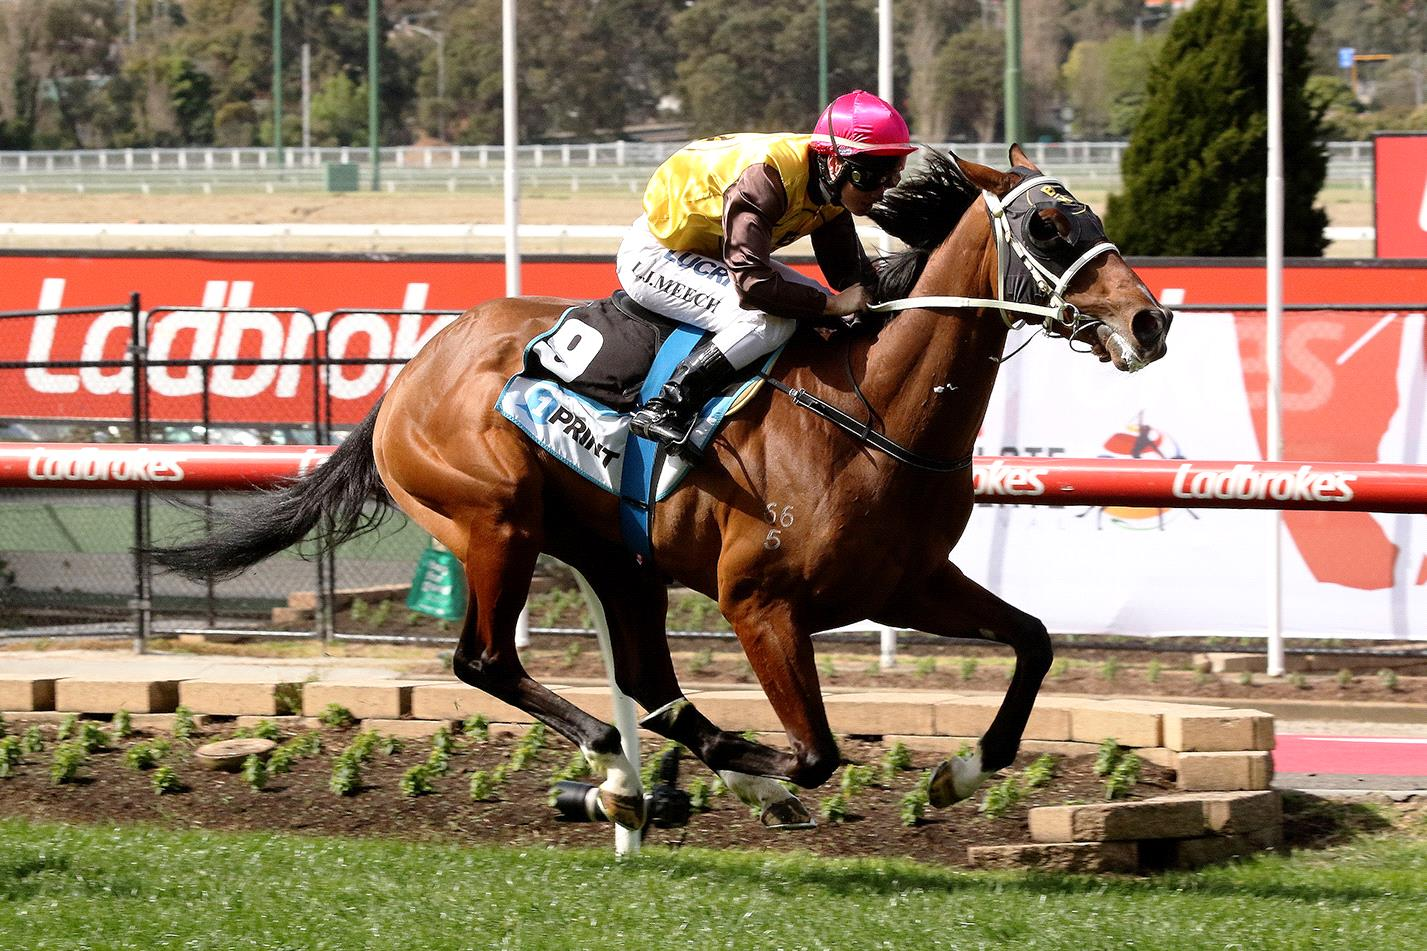 A repeat of a perfect ride would see Tavirun incredibly tough to catch again.